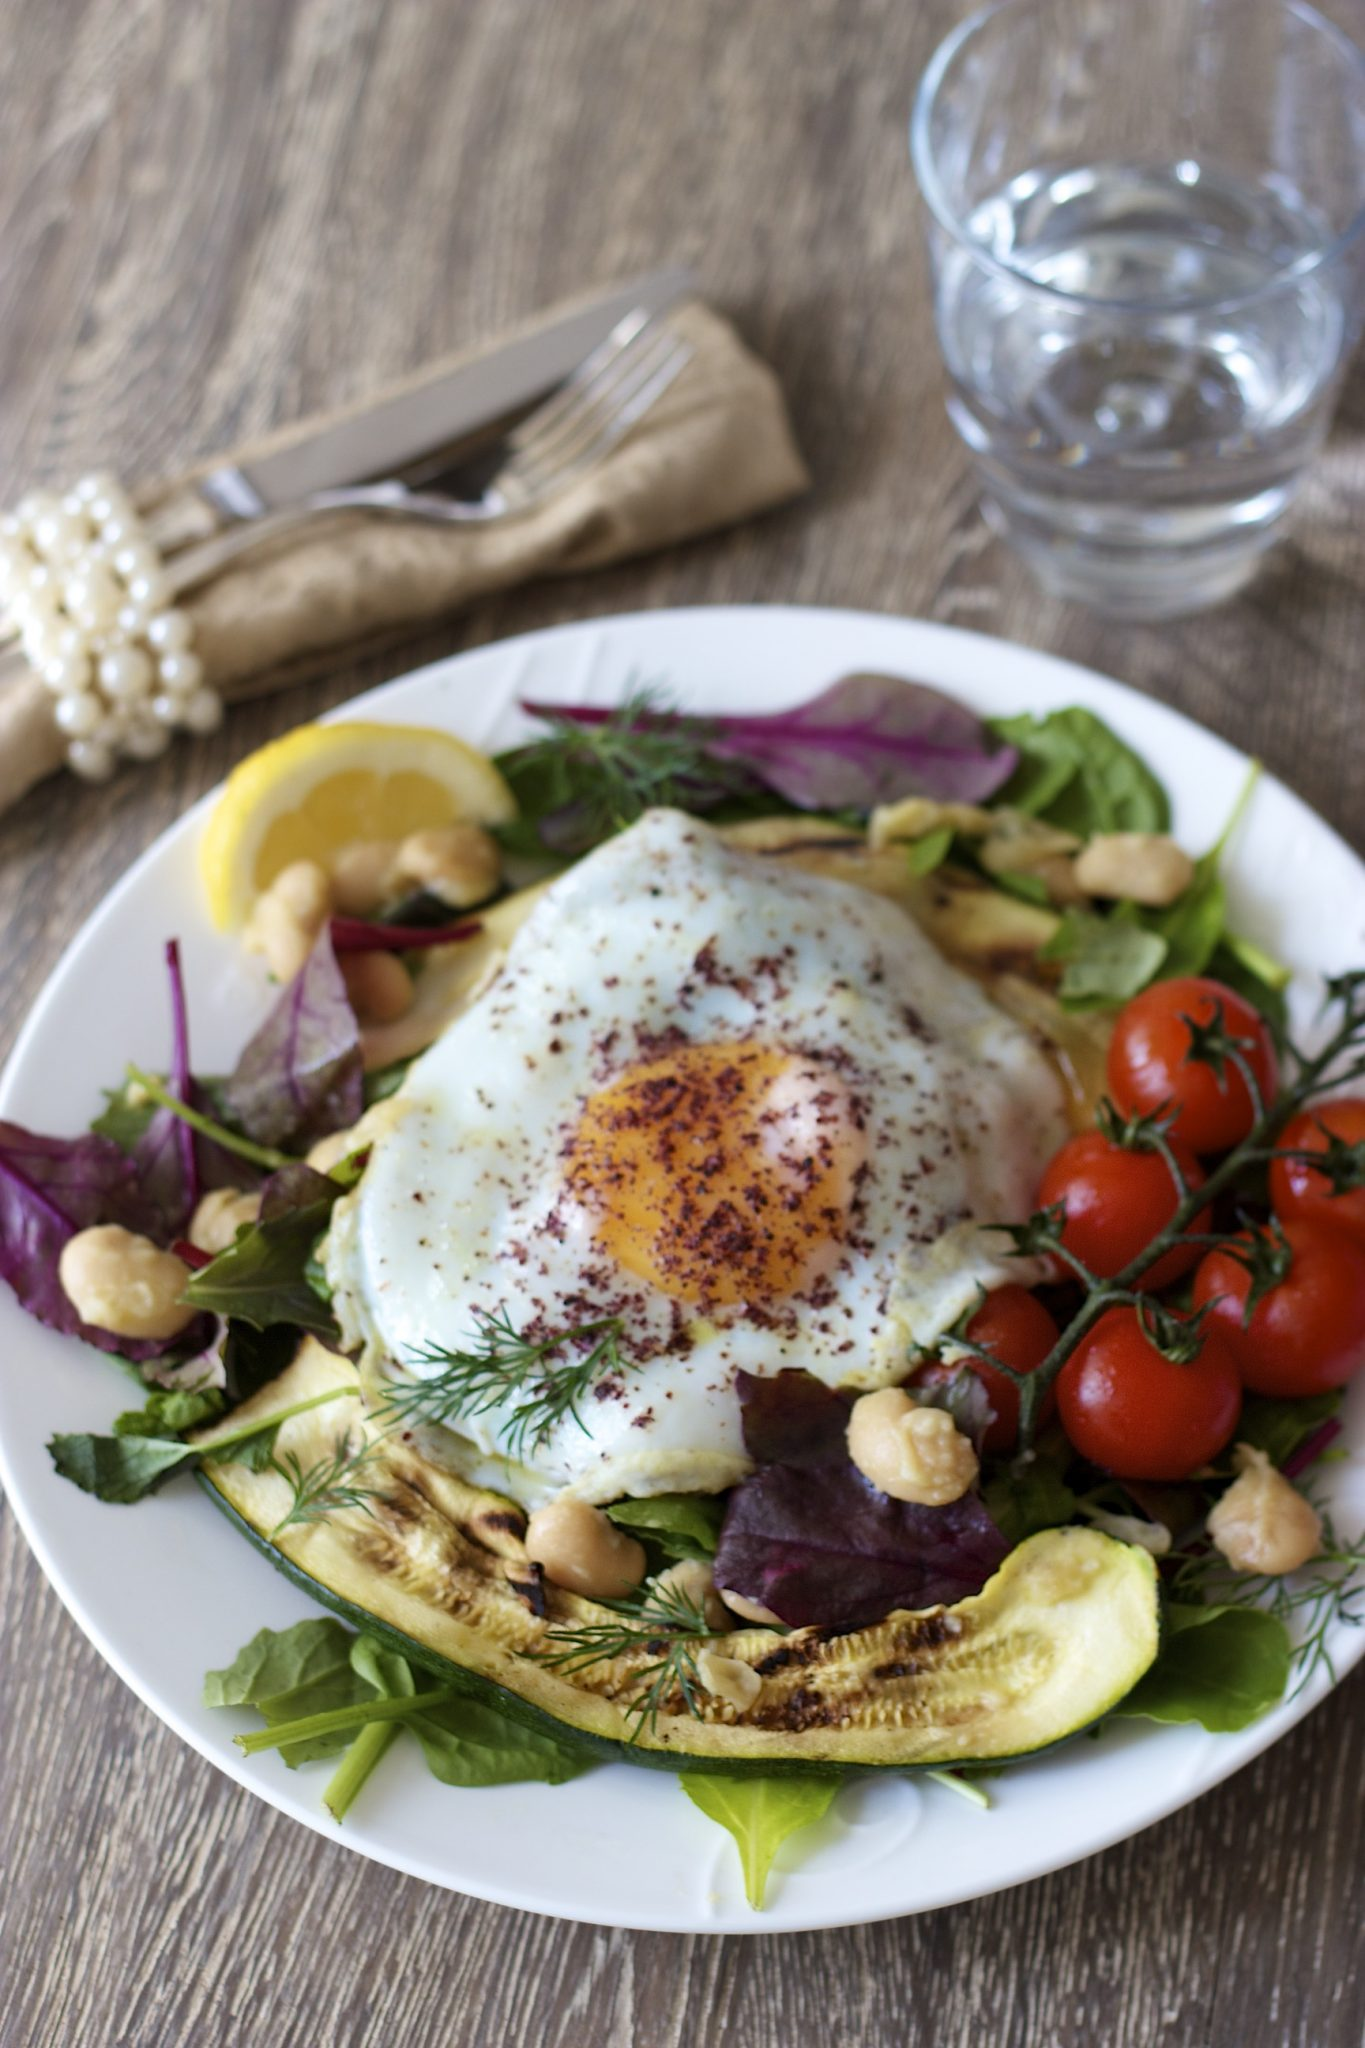 Mixed Greens Salad with Garlic Butter Beans Fried Egg and Sumac